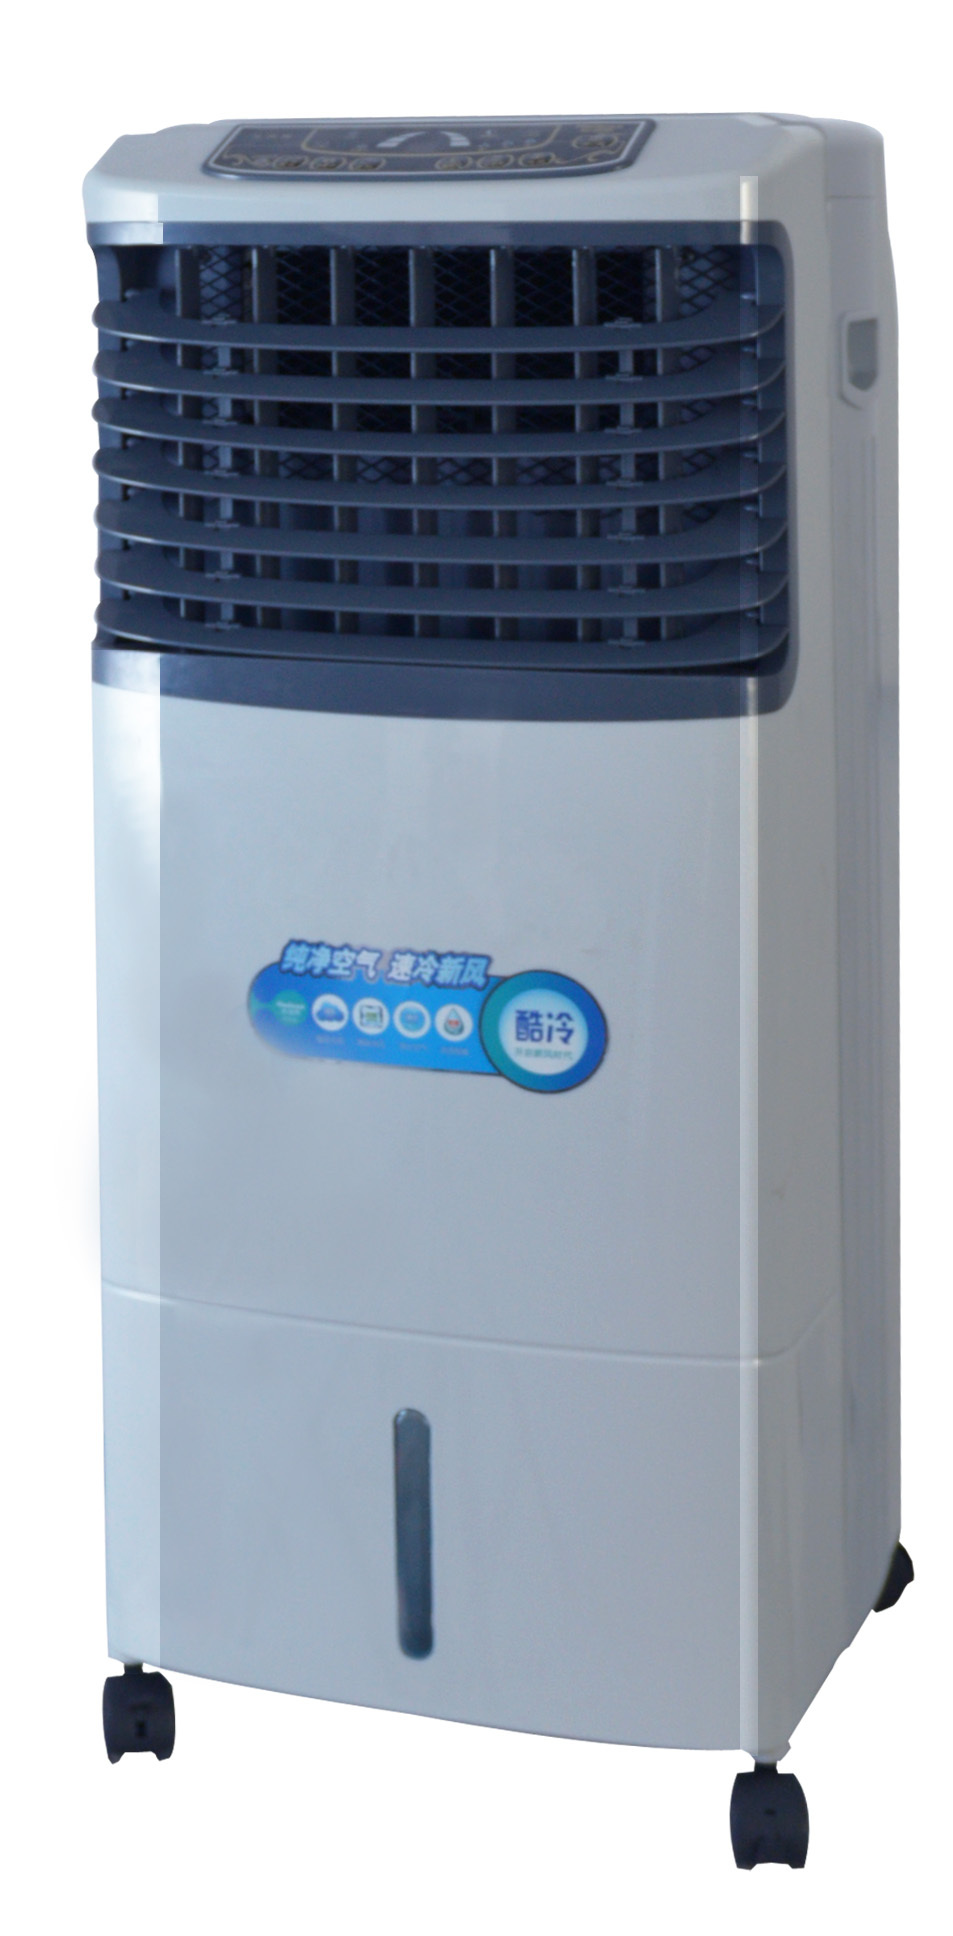 Helenbo Home Appliance Bedroom Dubai Air Cooler And Heater